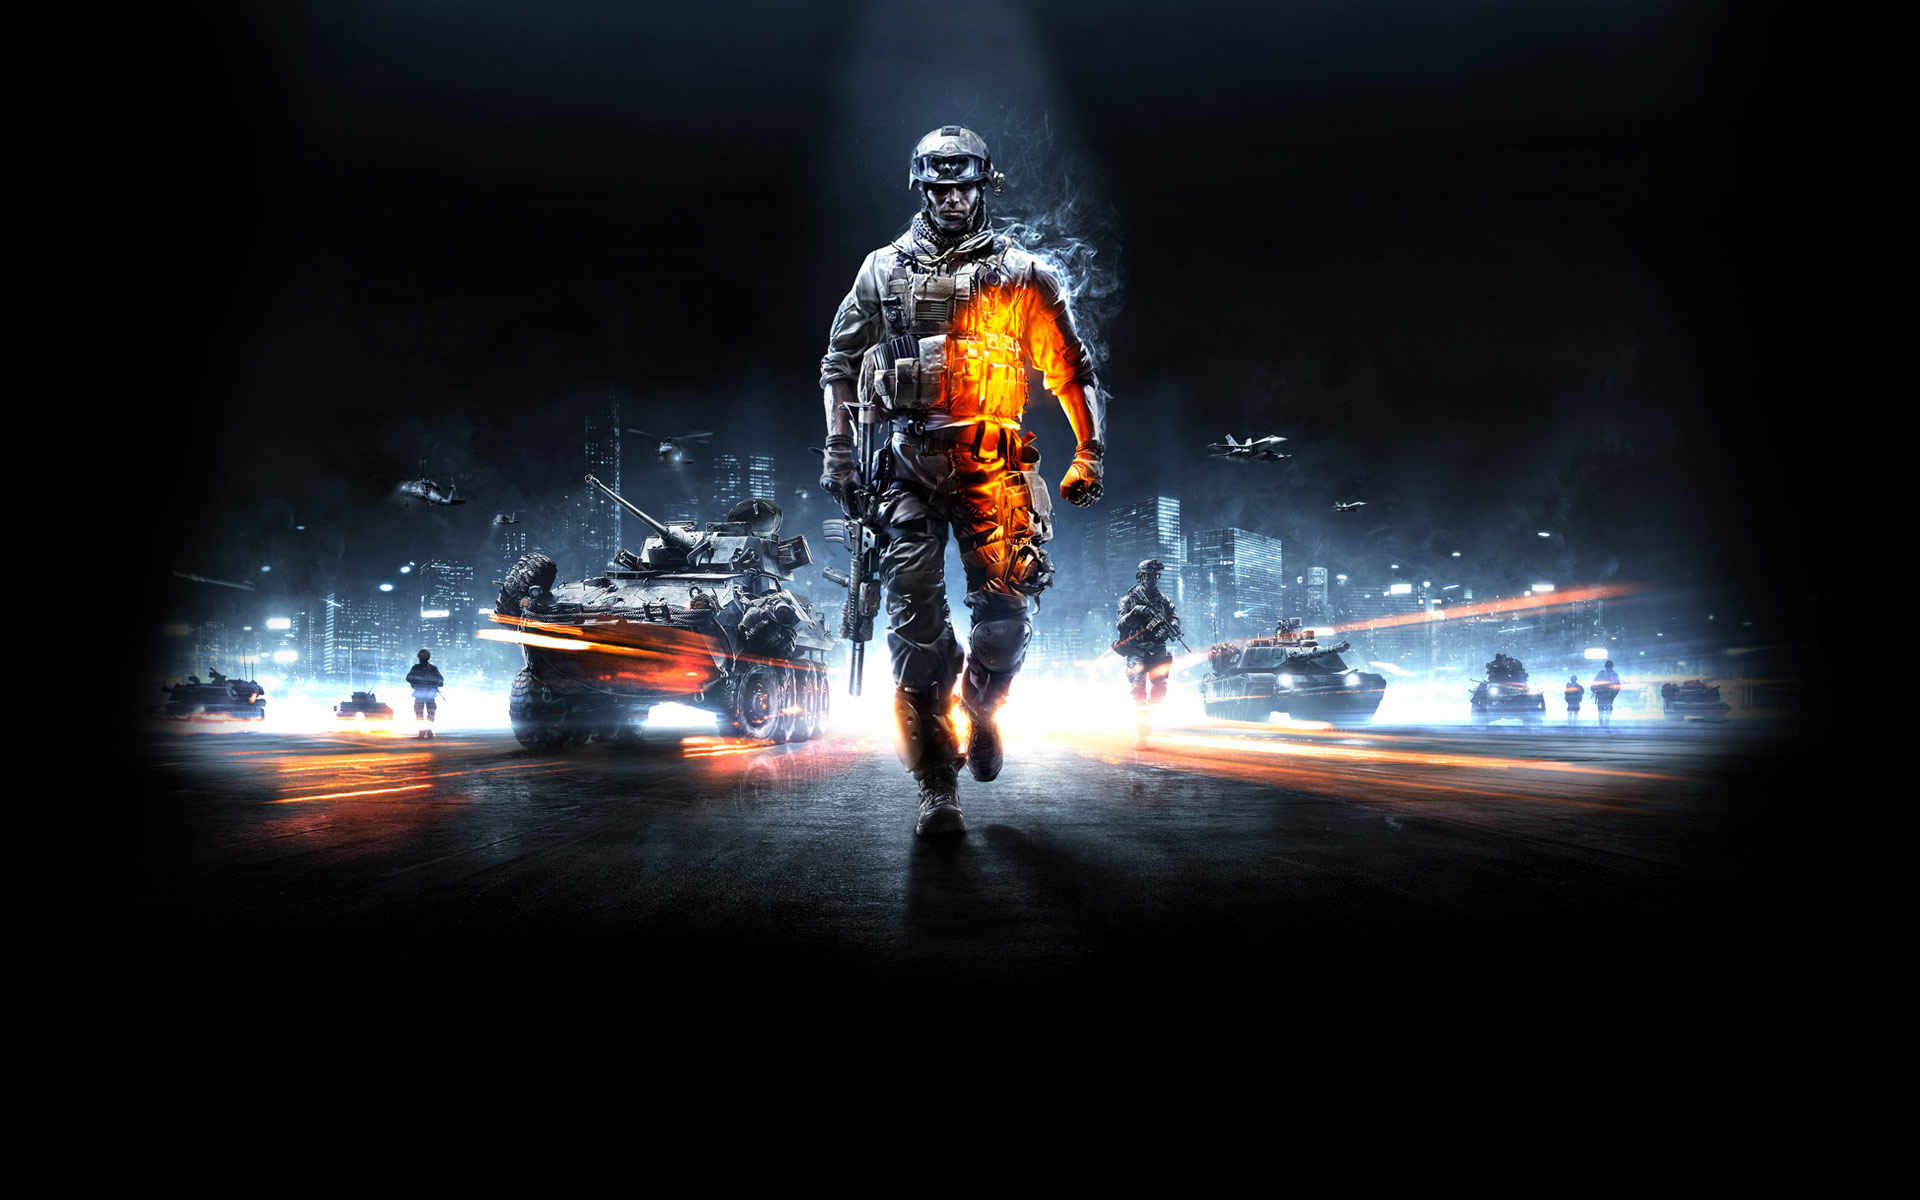 Hd wallpaper windows 7 - Battlefield 3 Hd Wallpaper 3